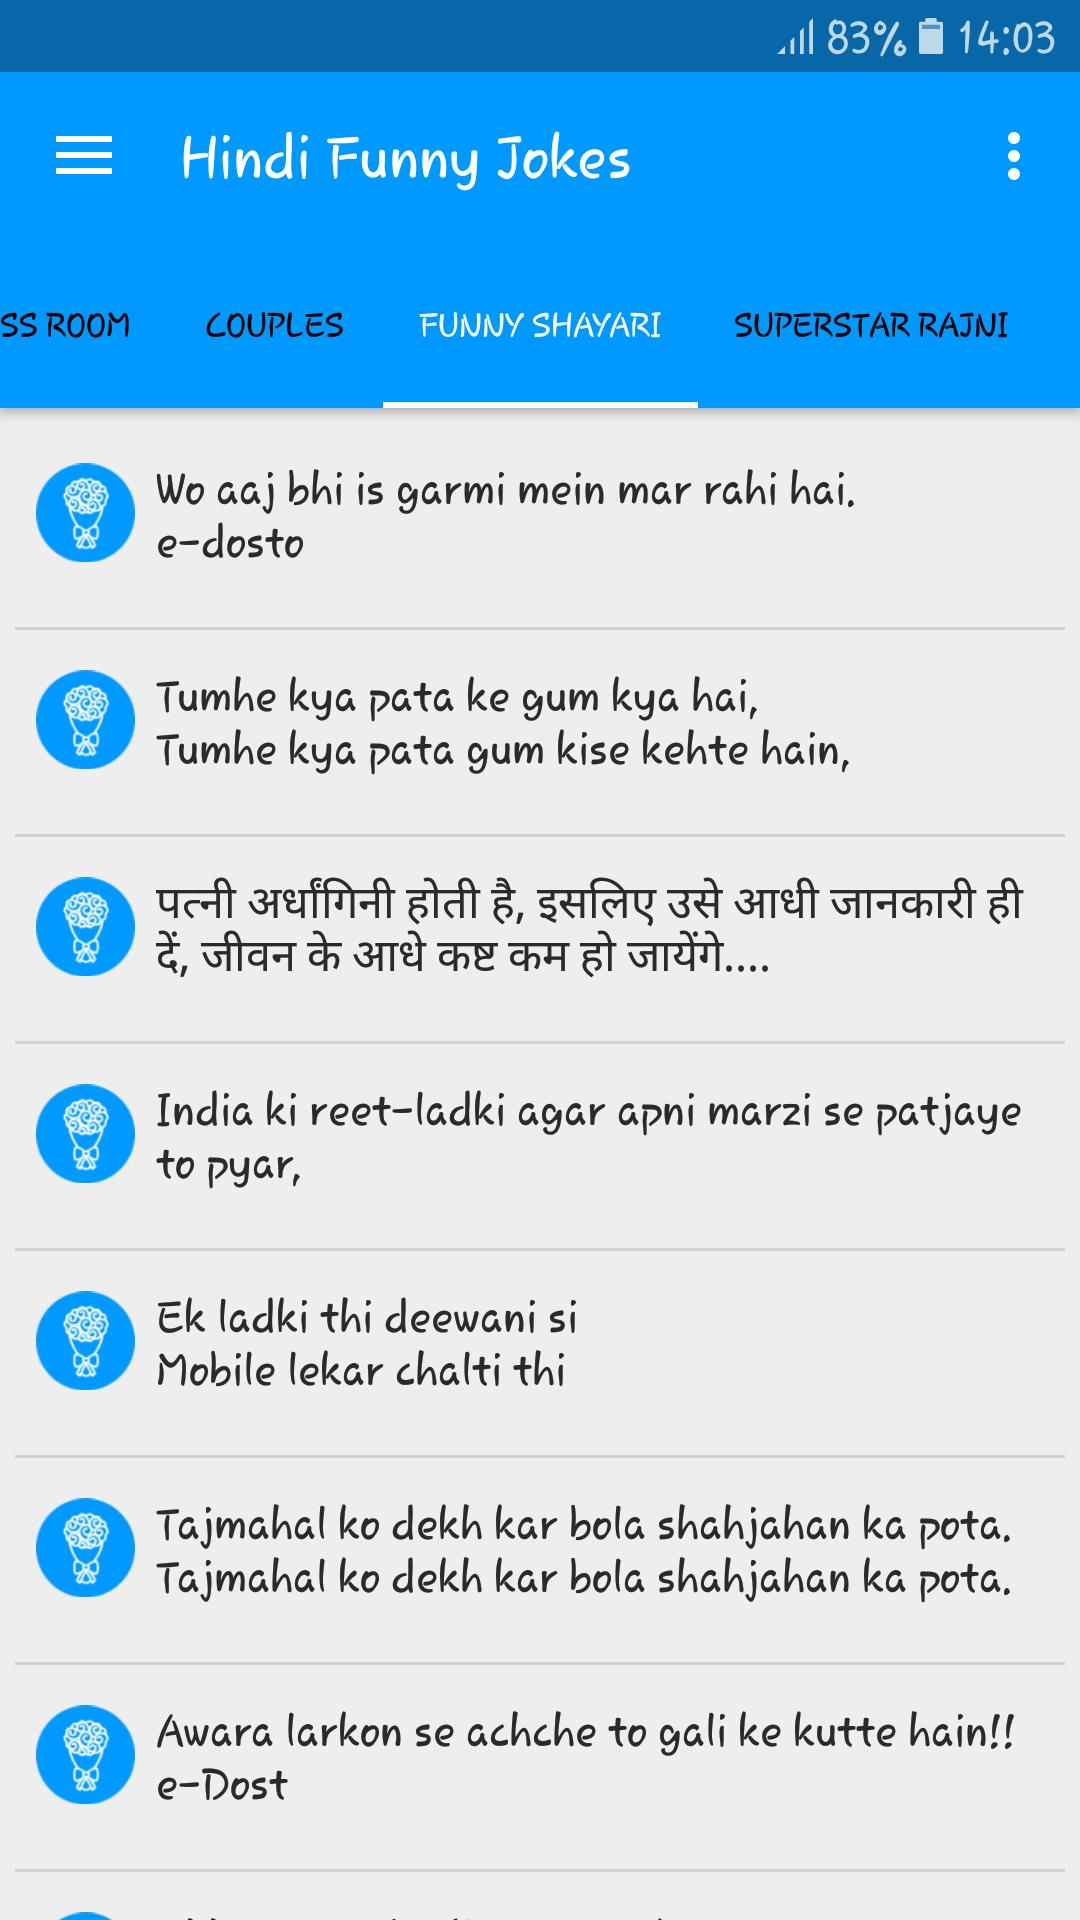 Funny Jokes & Shayari for Android - APK Download